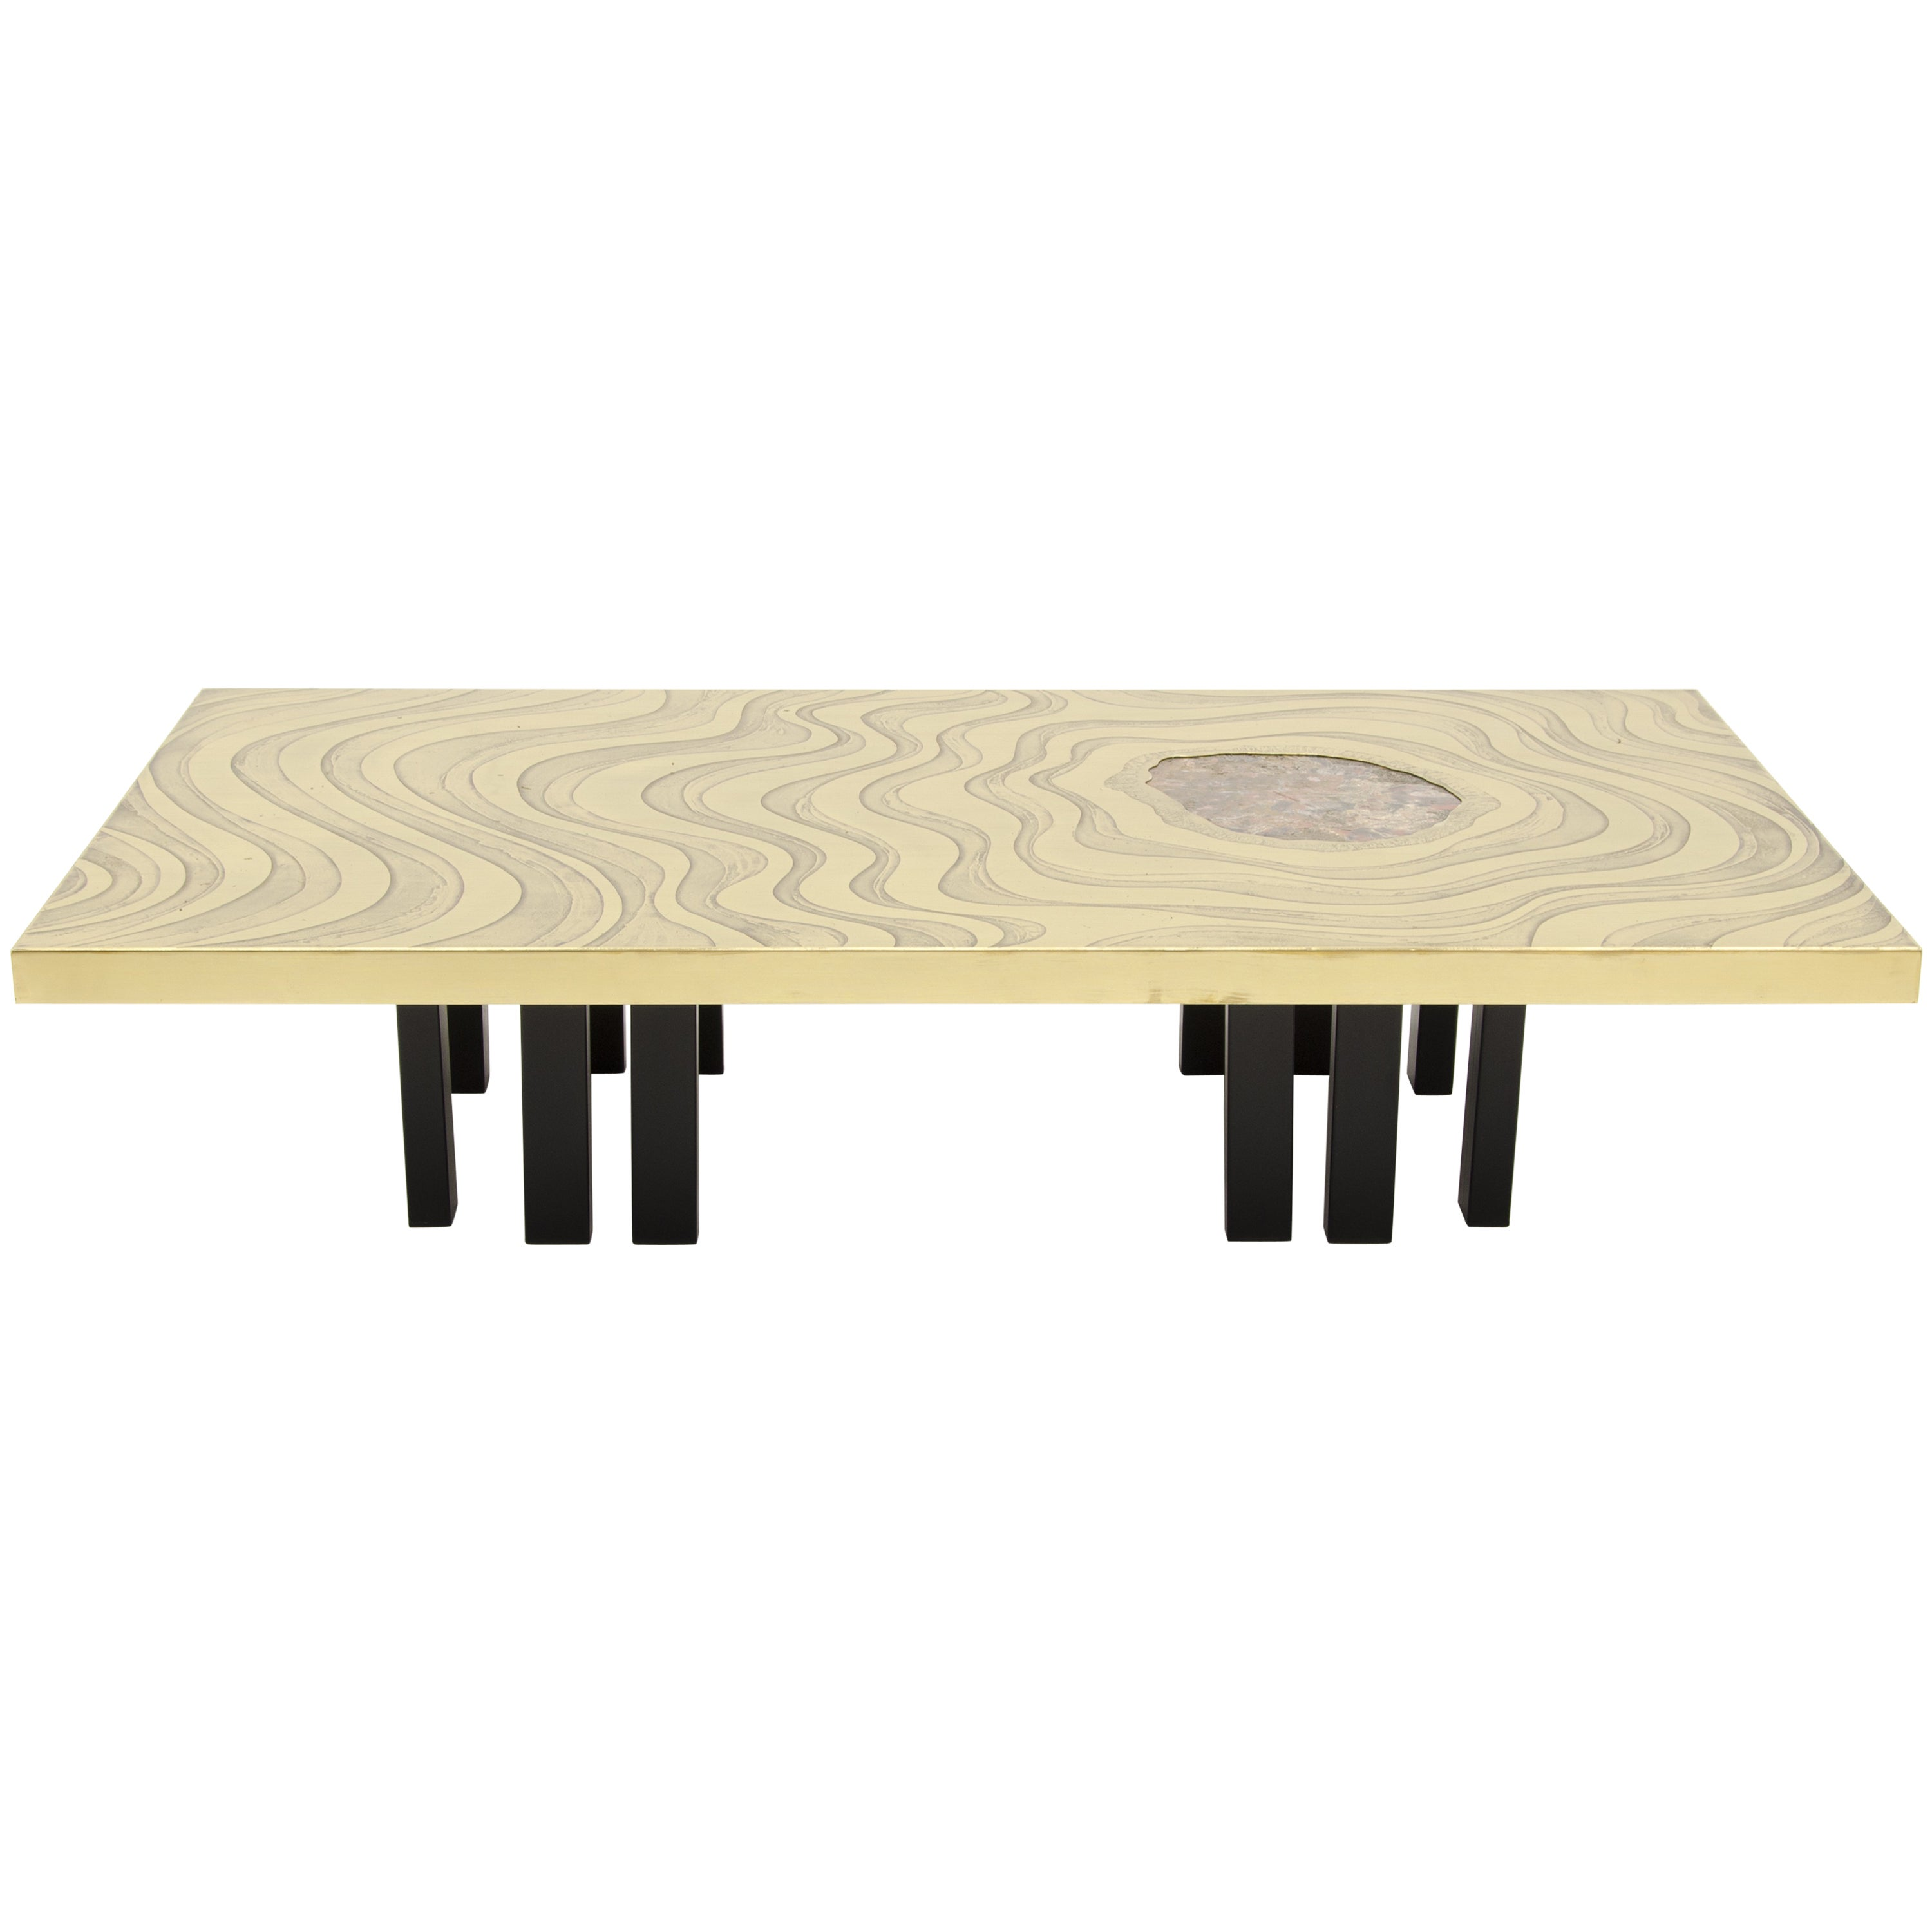 Amazing Large Etched Brass Coffee Table by Willy Daro